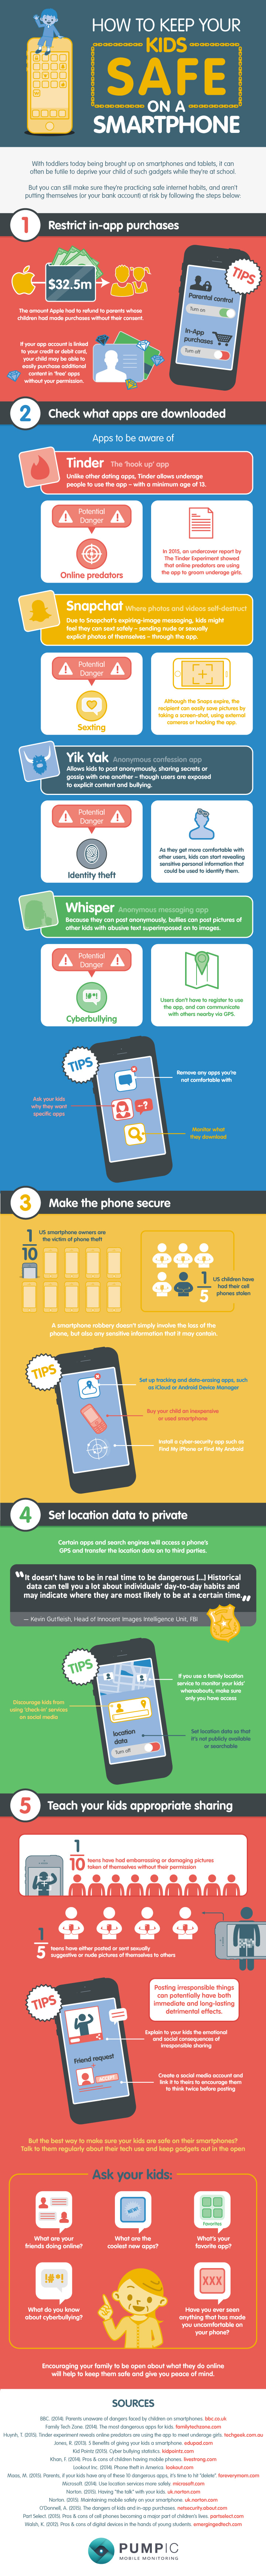 kids safety on smartphone infographic